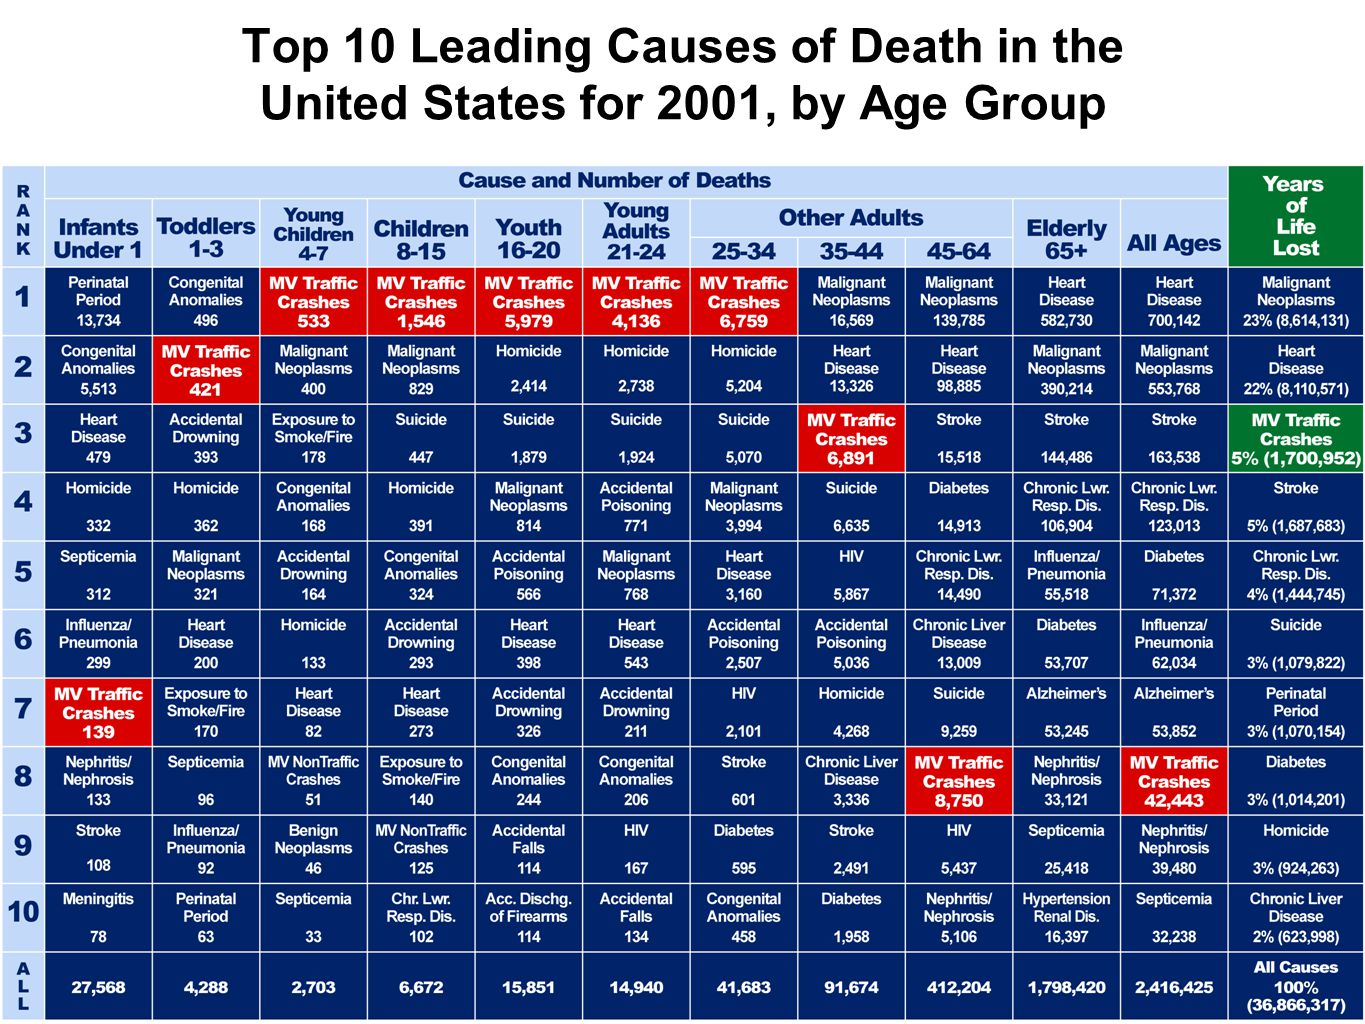 Top 10 Leading Causes of Death in the United States for 2001, by Age Group